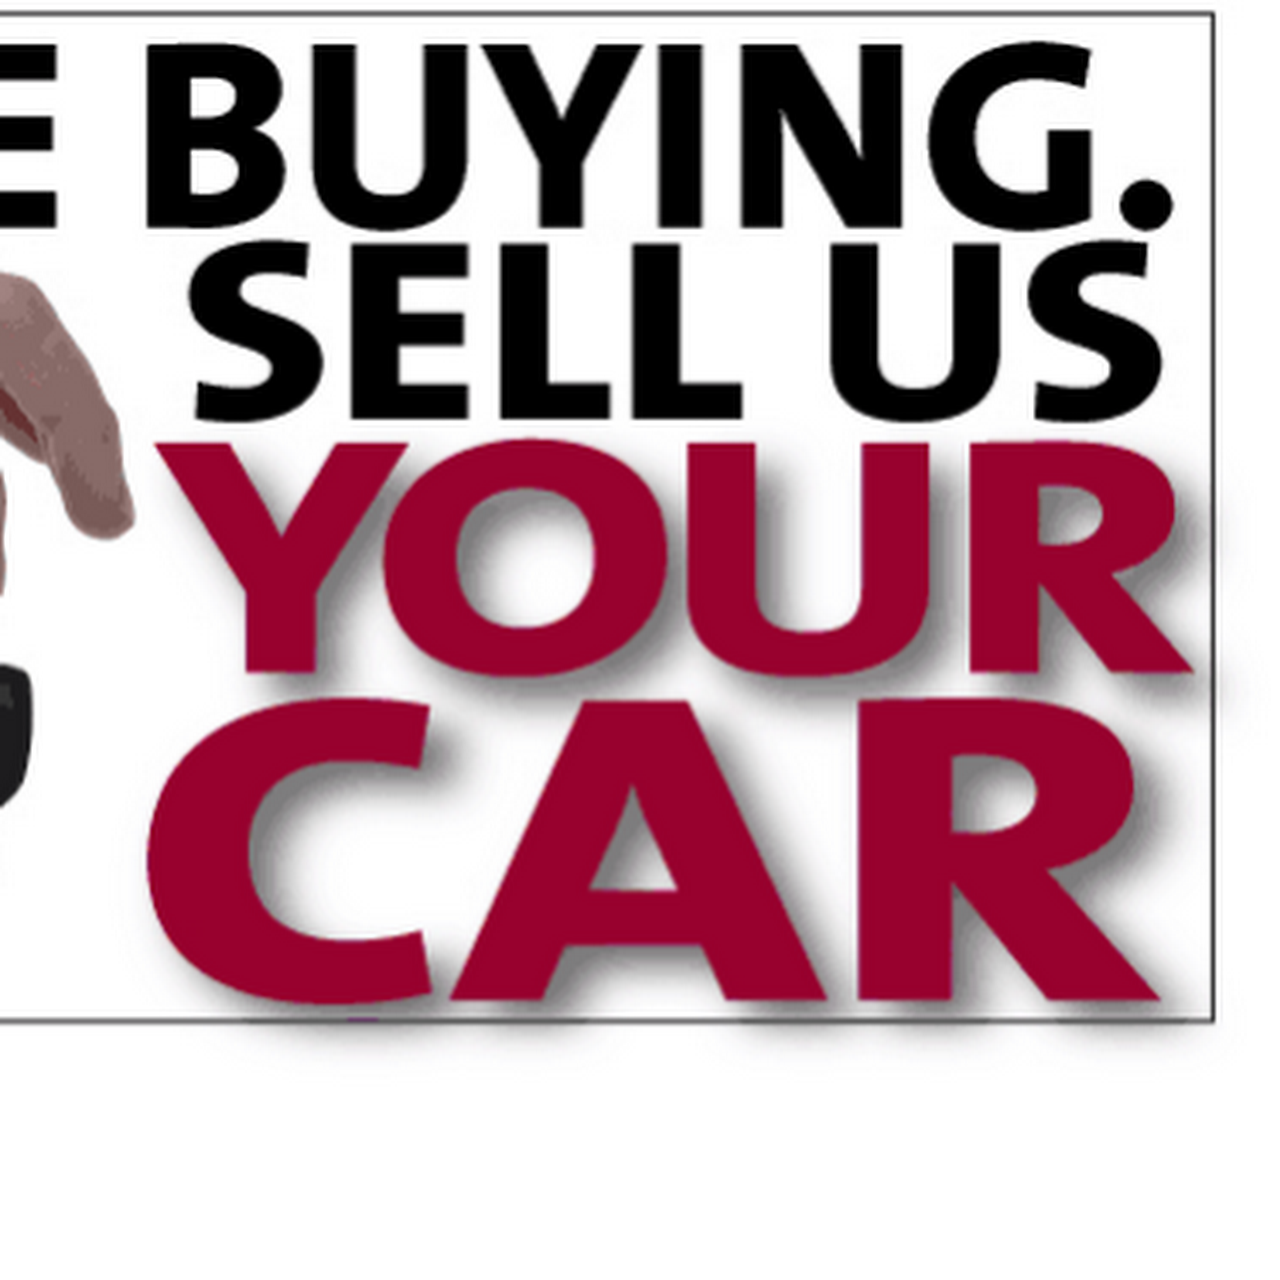 JUNK CARS CASH FOR CARS/CAR BUYERS - Auto Broker in DUARTE